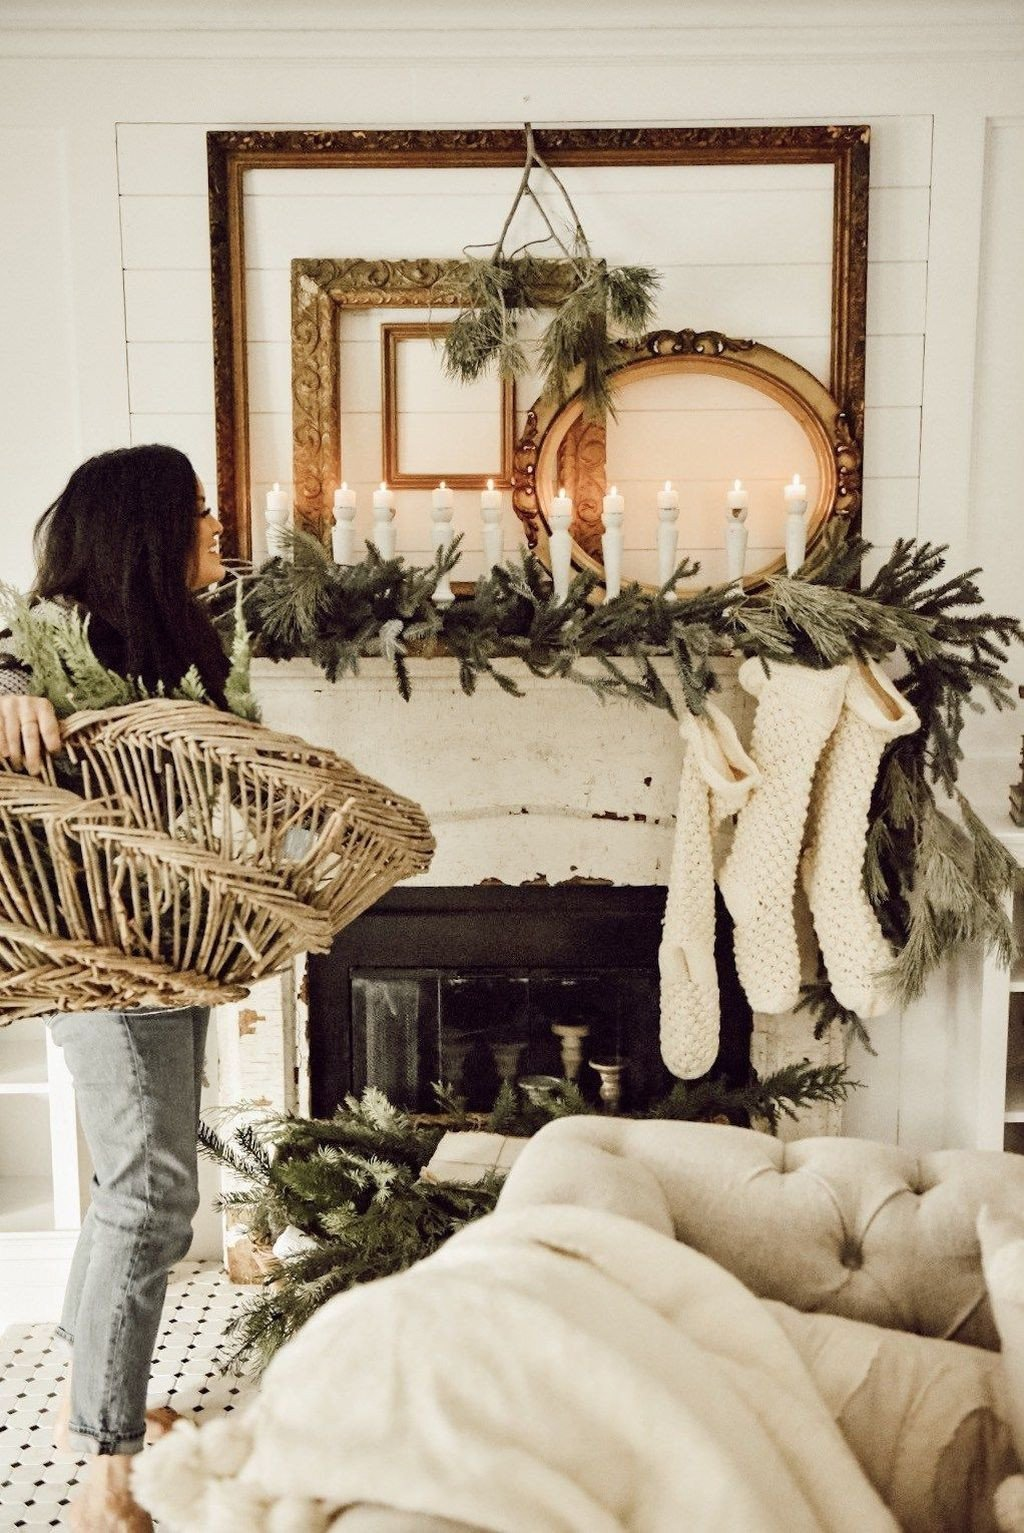 Christmas Bedroom Decorating Ideas Awesome 20 Super Christmas Bedroom Decorations Ideas